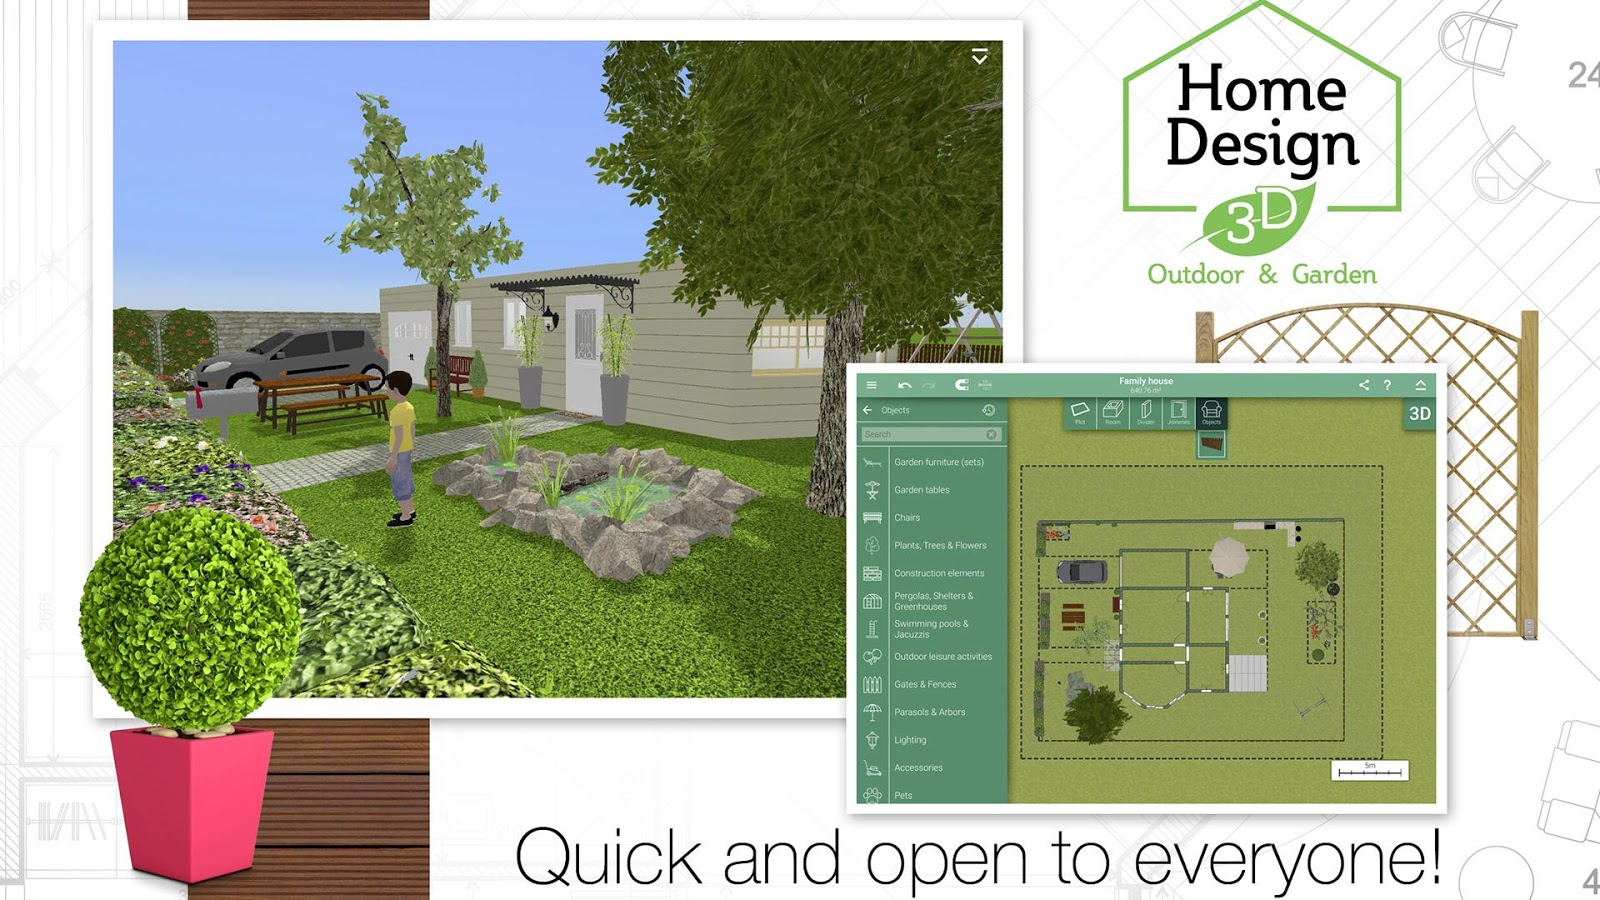 Home Garden Design Pictures landscape design sample 5. cad design layout of family rear garden